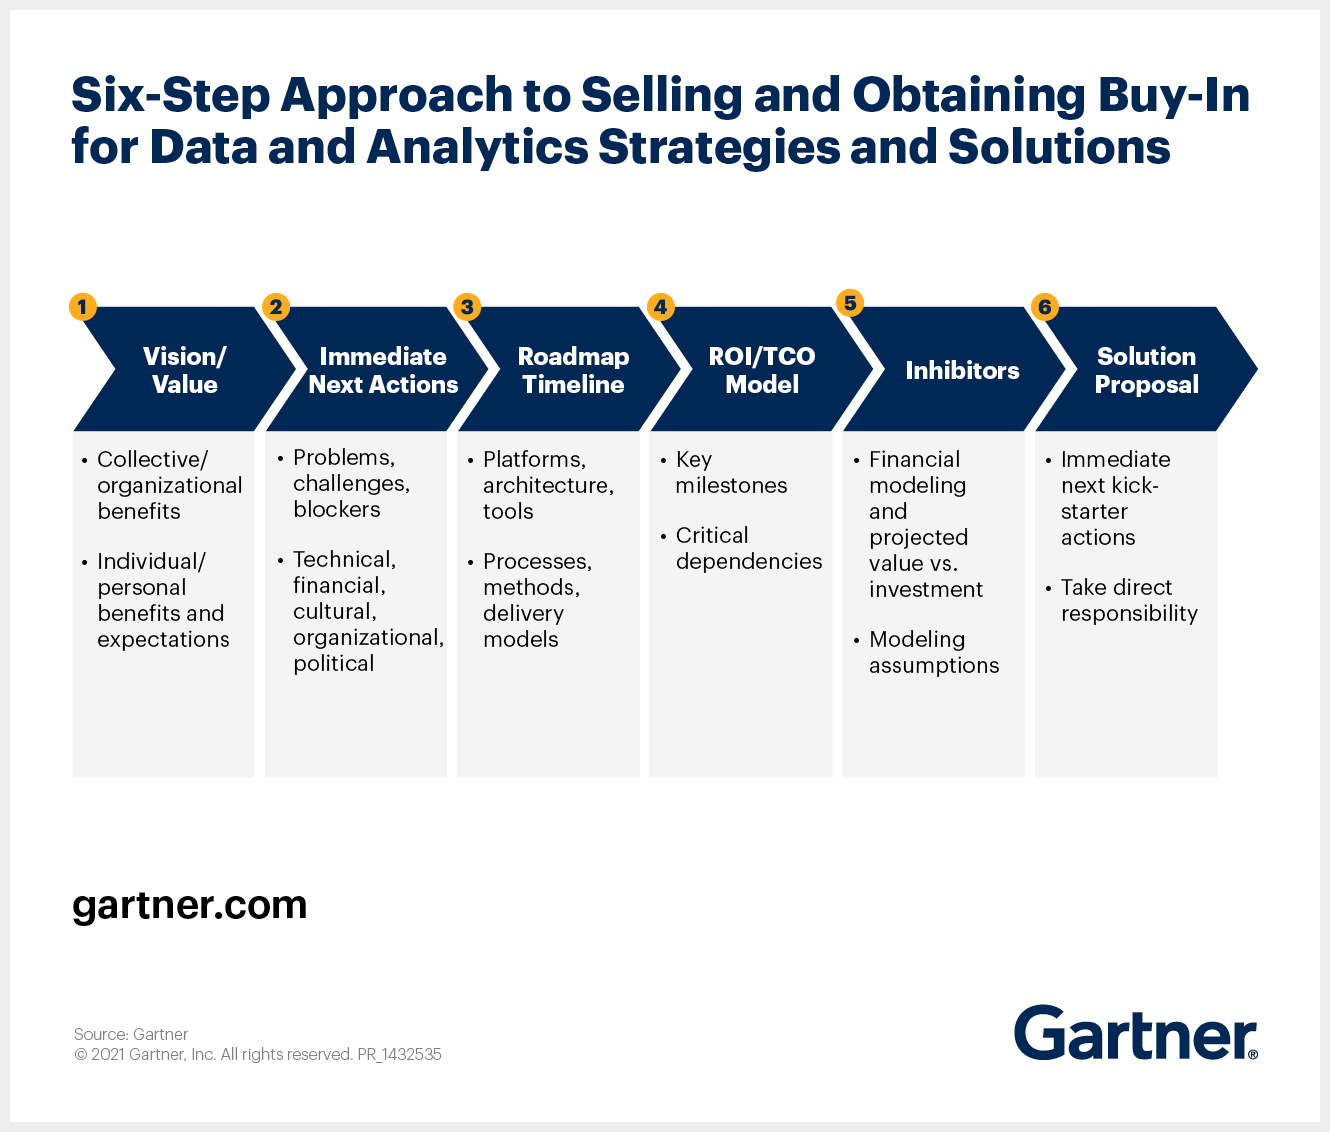 How to convince business leaders to advance data and analytics strategies